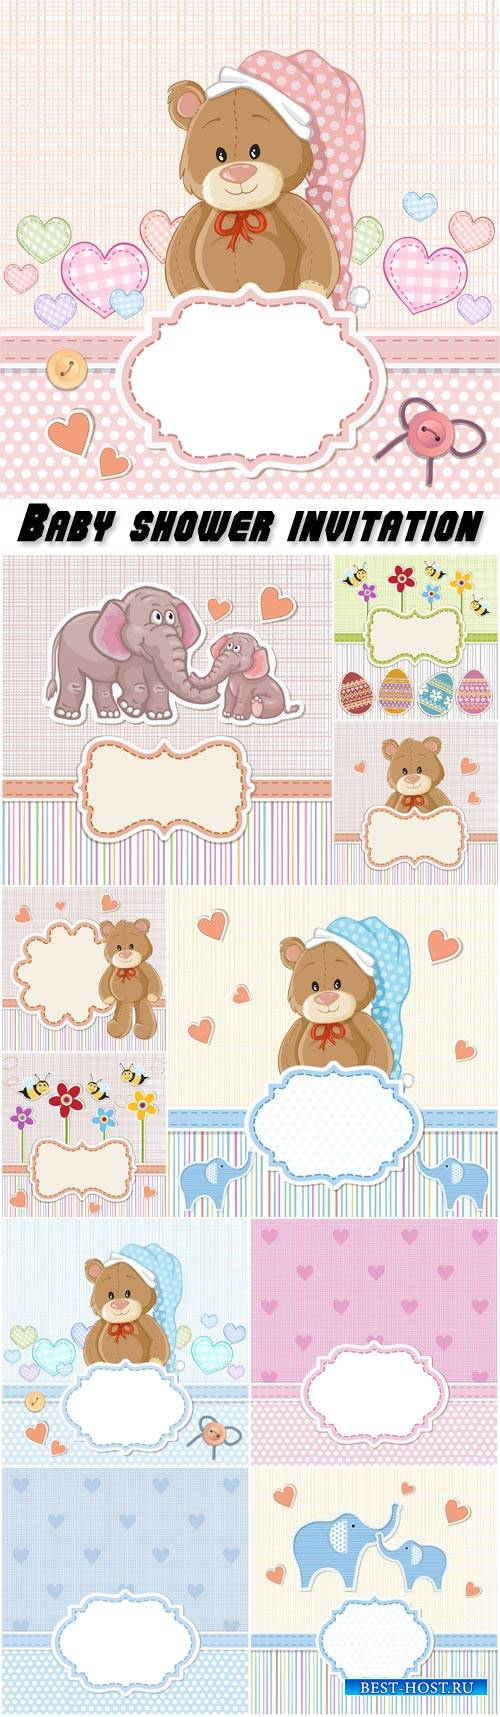 Baby shower invitation, teddy bear for baby